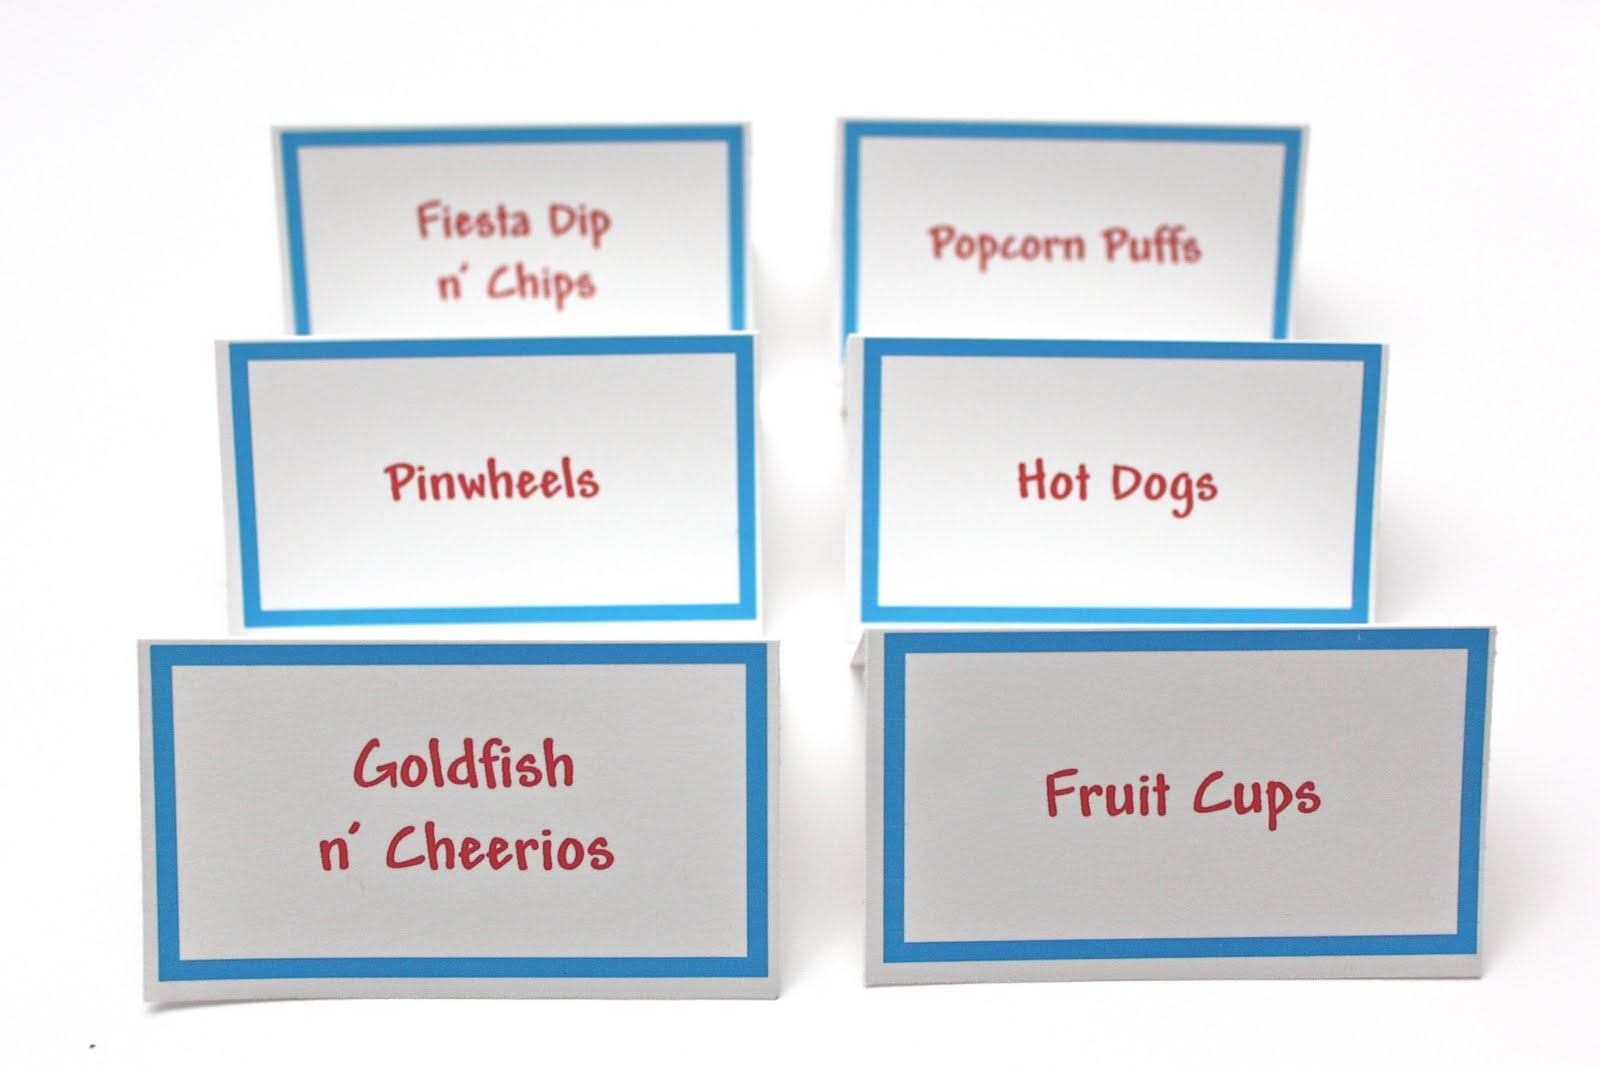 Free Printable Food Tent Cards - Printable Cards - Free Printable Food Tent Cards